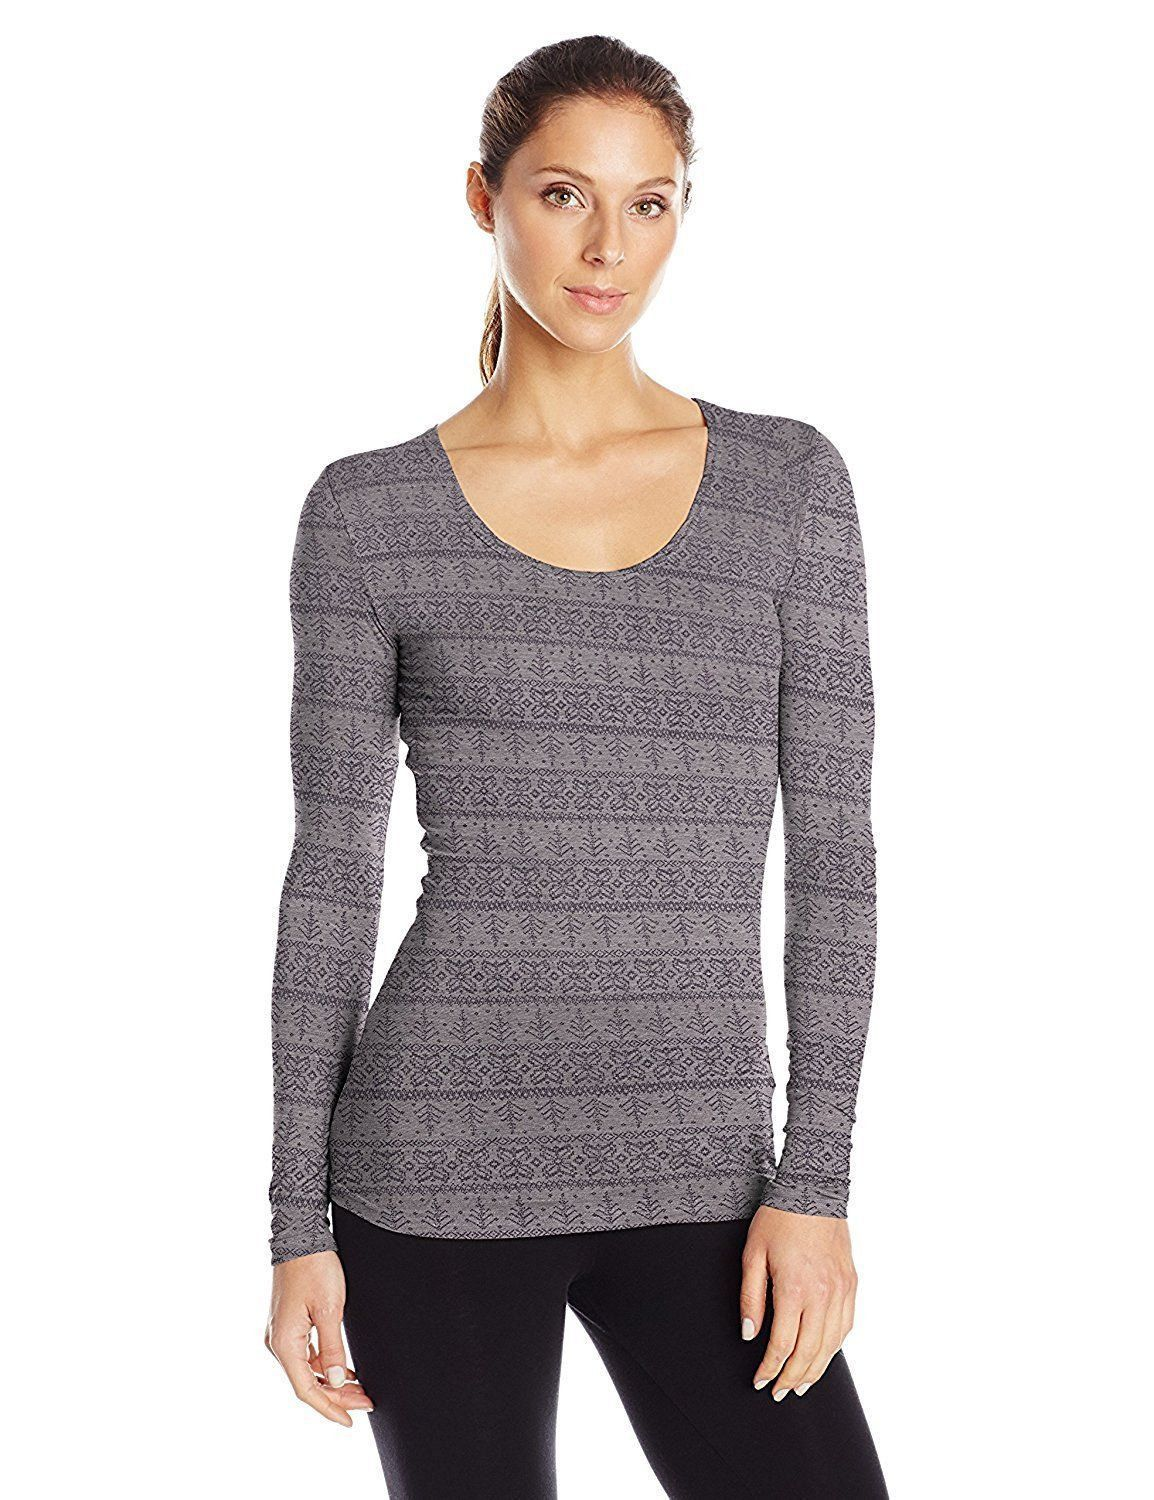 4737b10666e887 32 Degrees Womens Size Medium Long Sleeve Scoop Neck Base Layer Top,  Heather Stone